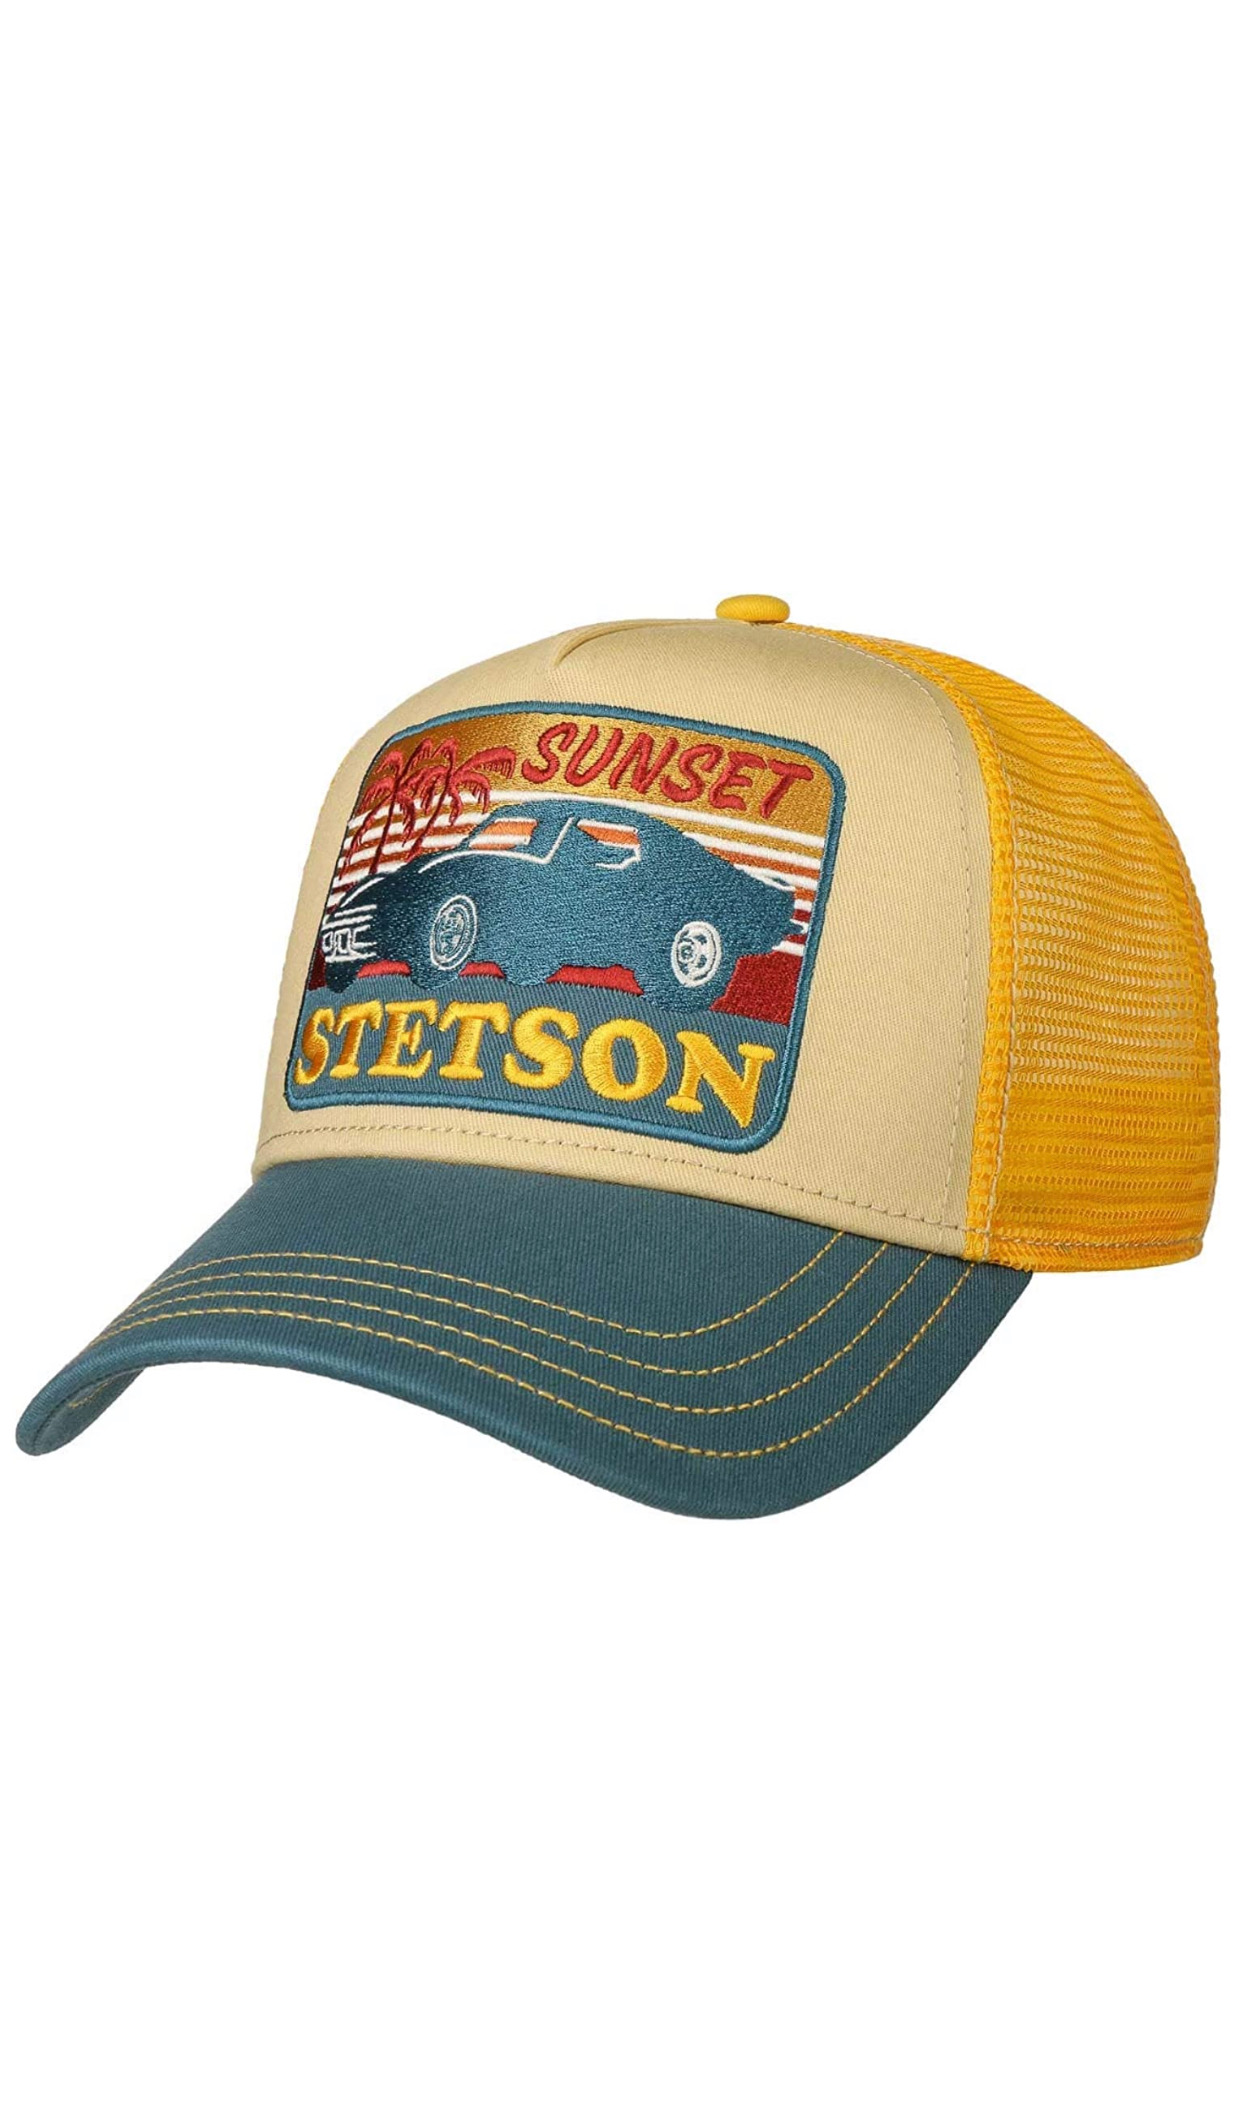 Stetson's Sunset Trucker.